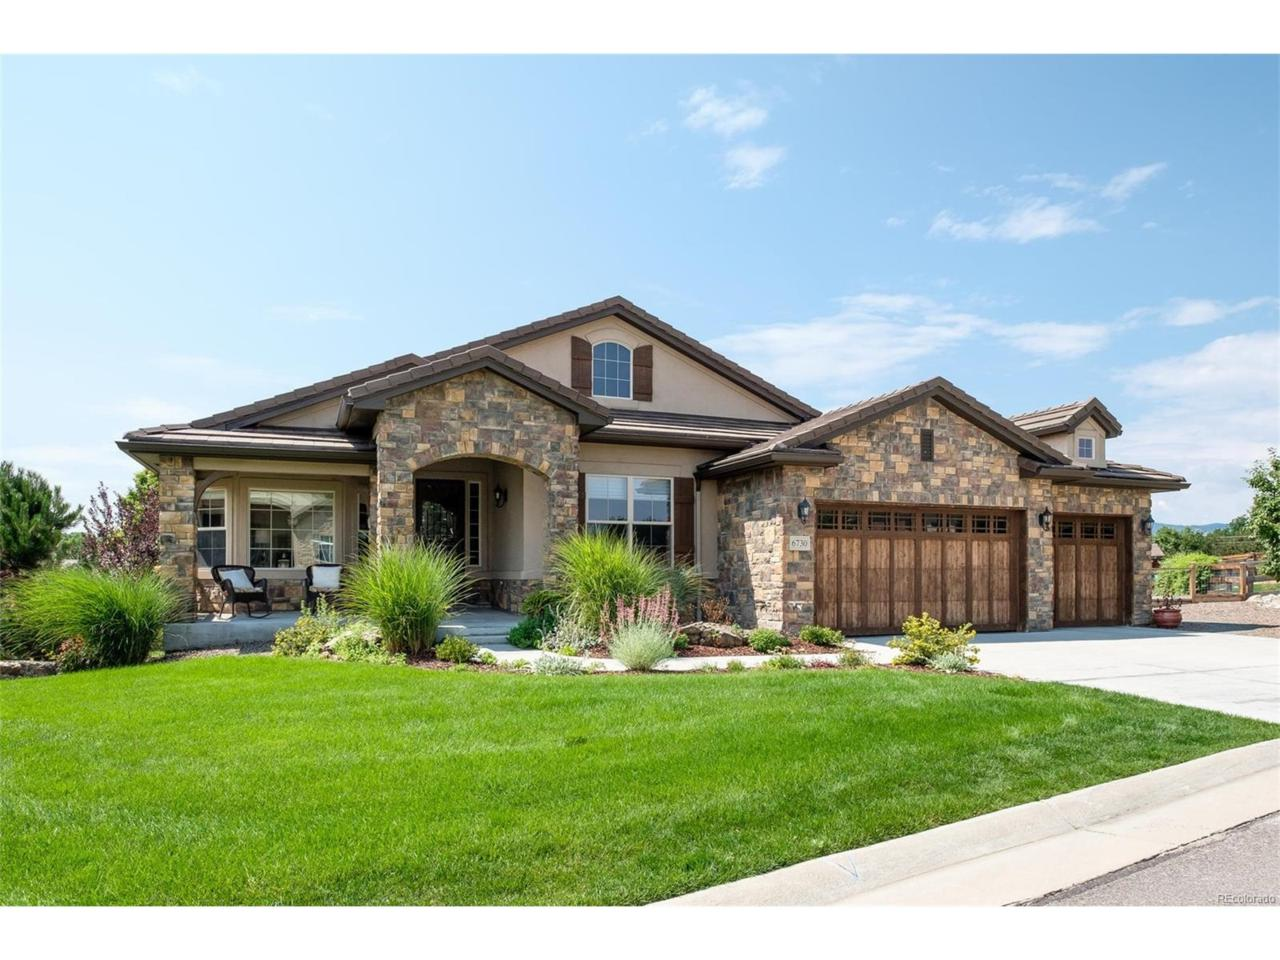 6730 S Zenobia Court, Littleton, CO 80128 (MLS #7407889) :: 8z Real Estate